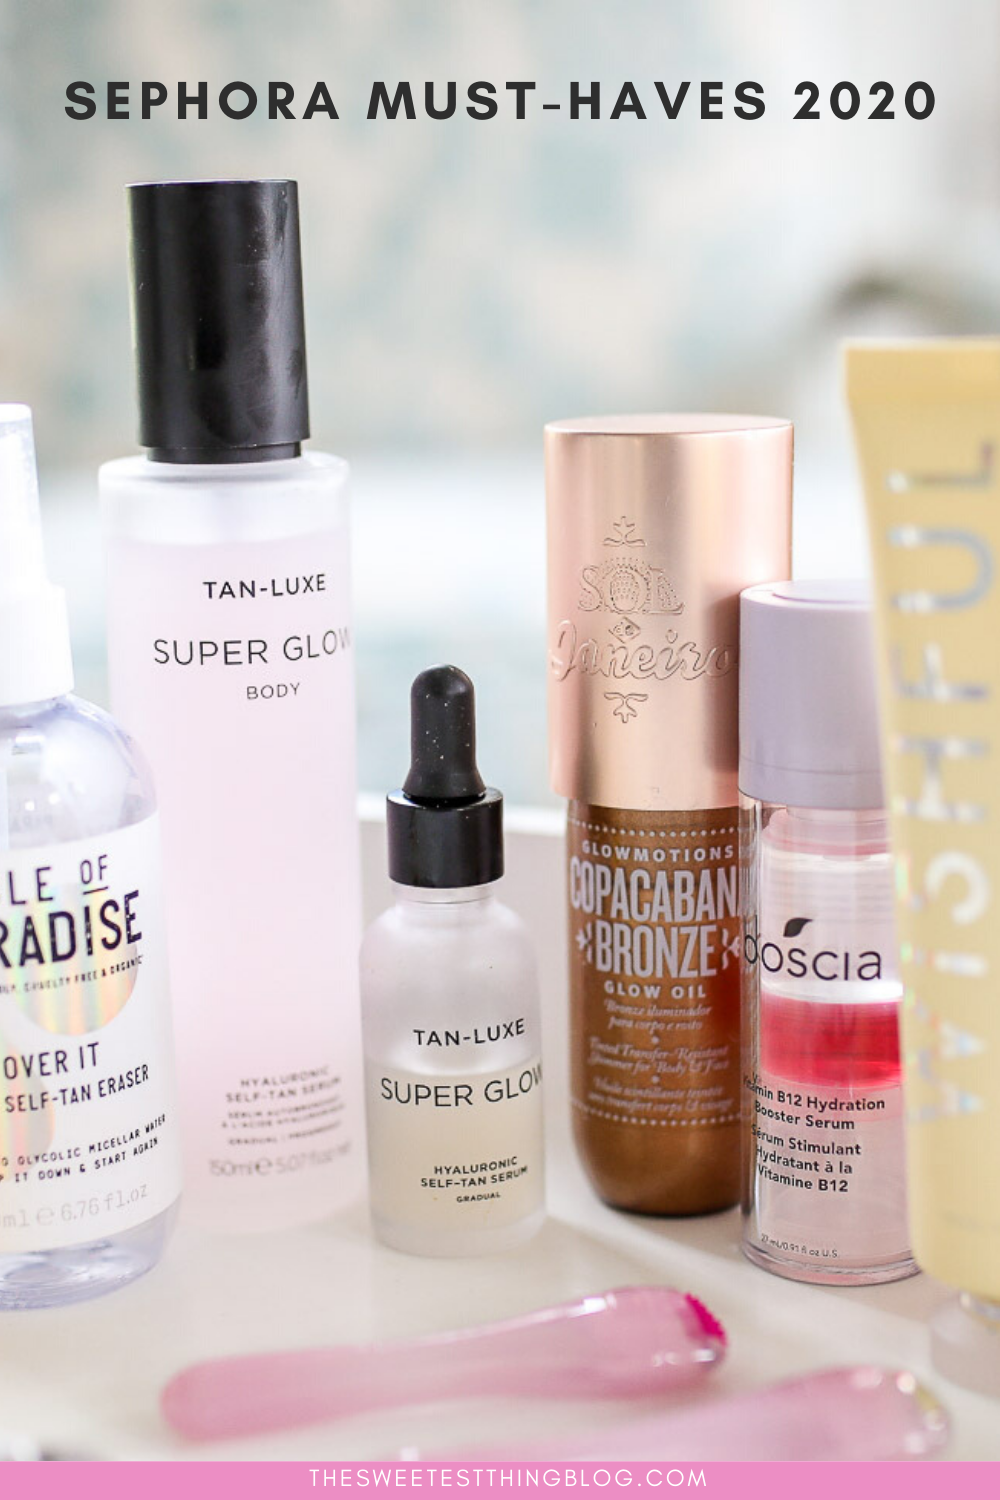 Self Care Products Us Life And Style The Sweetest Thing In 2020 The Sweetest Thing Blog Best Skincare Products Sephora